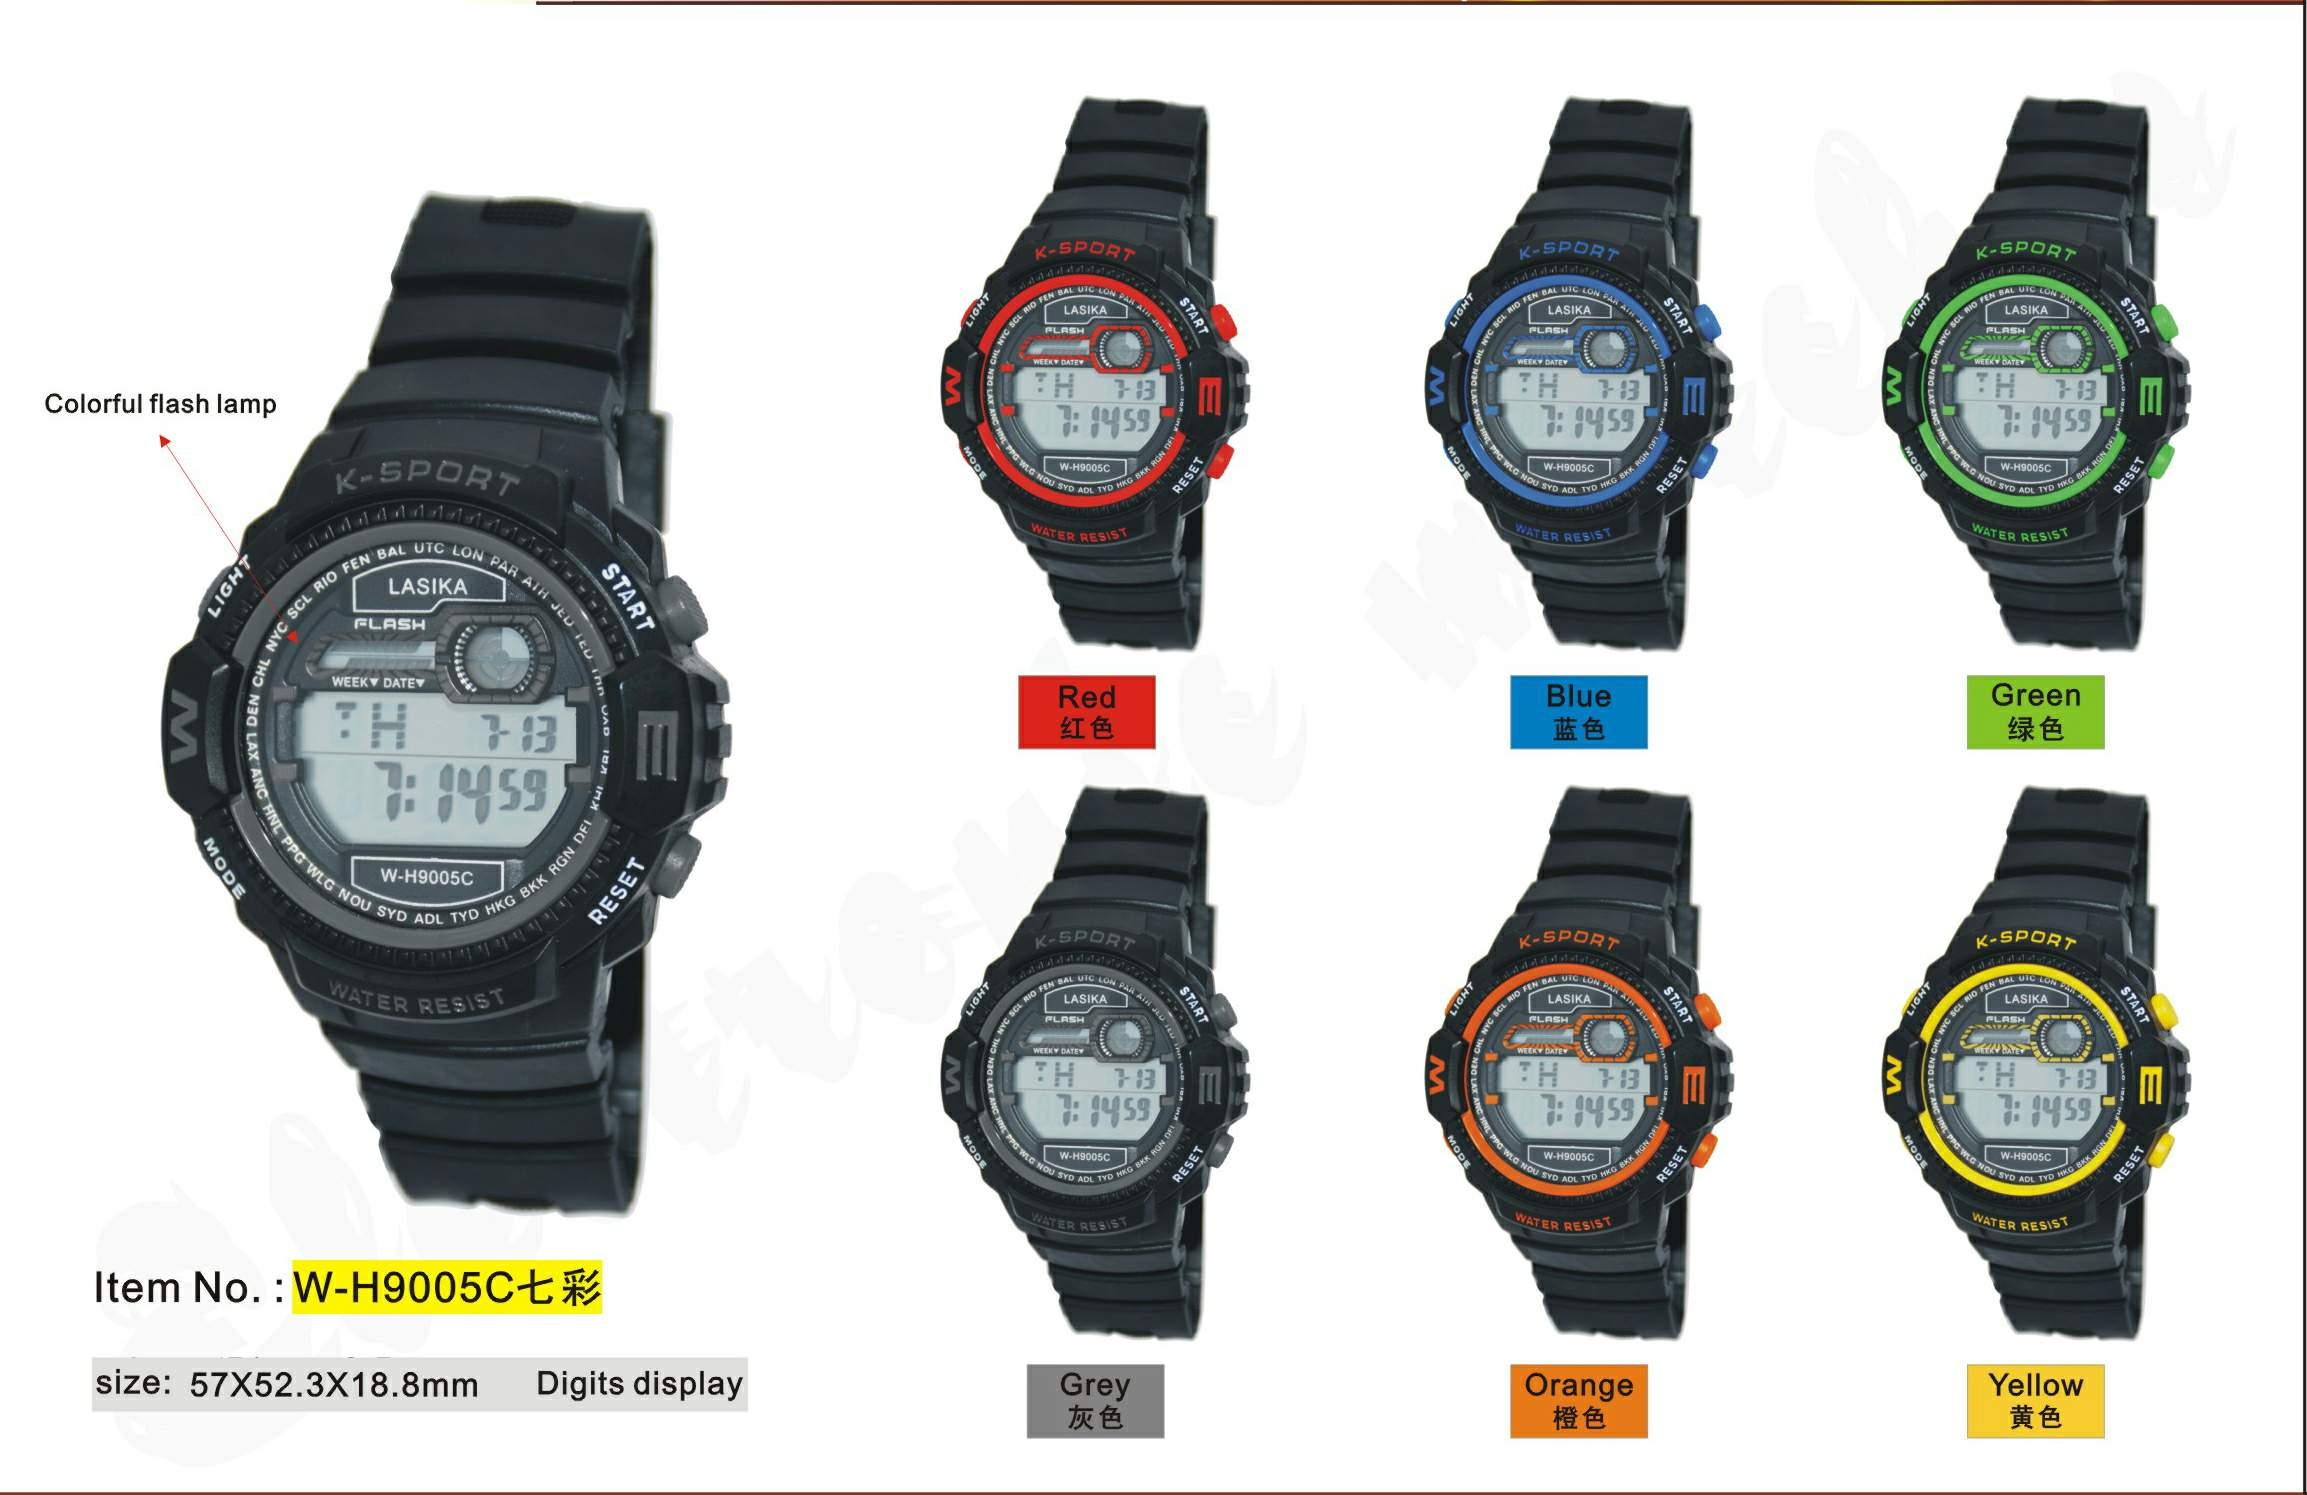 W-H9005C colorful